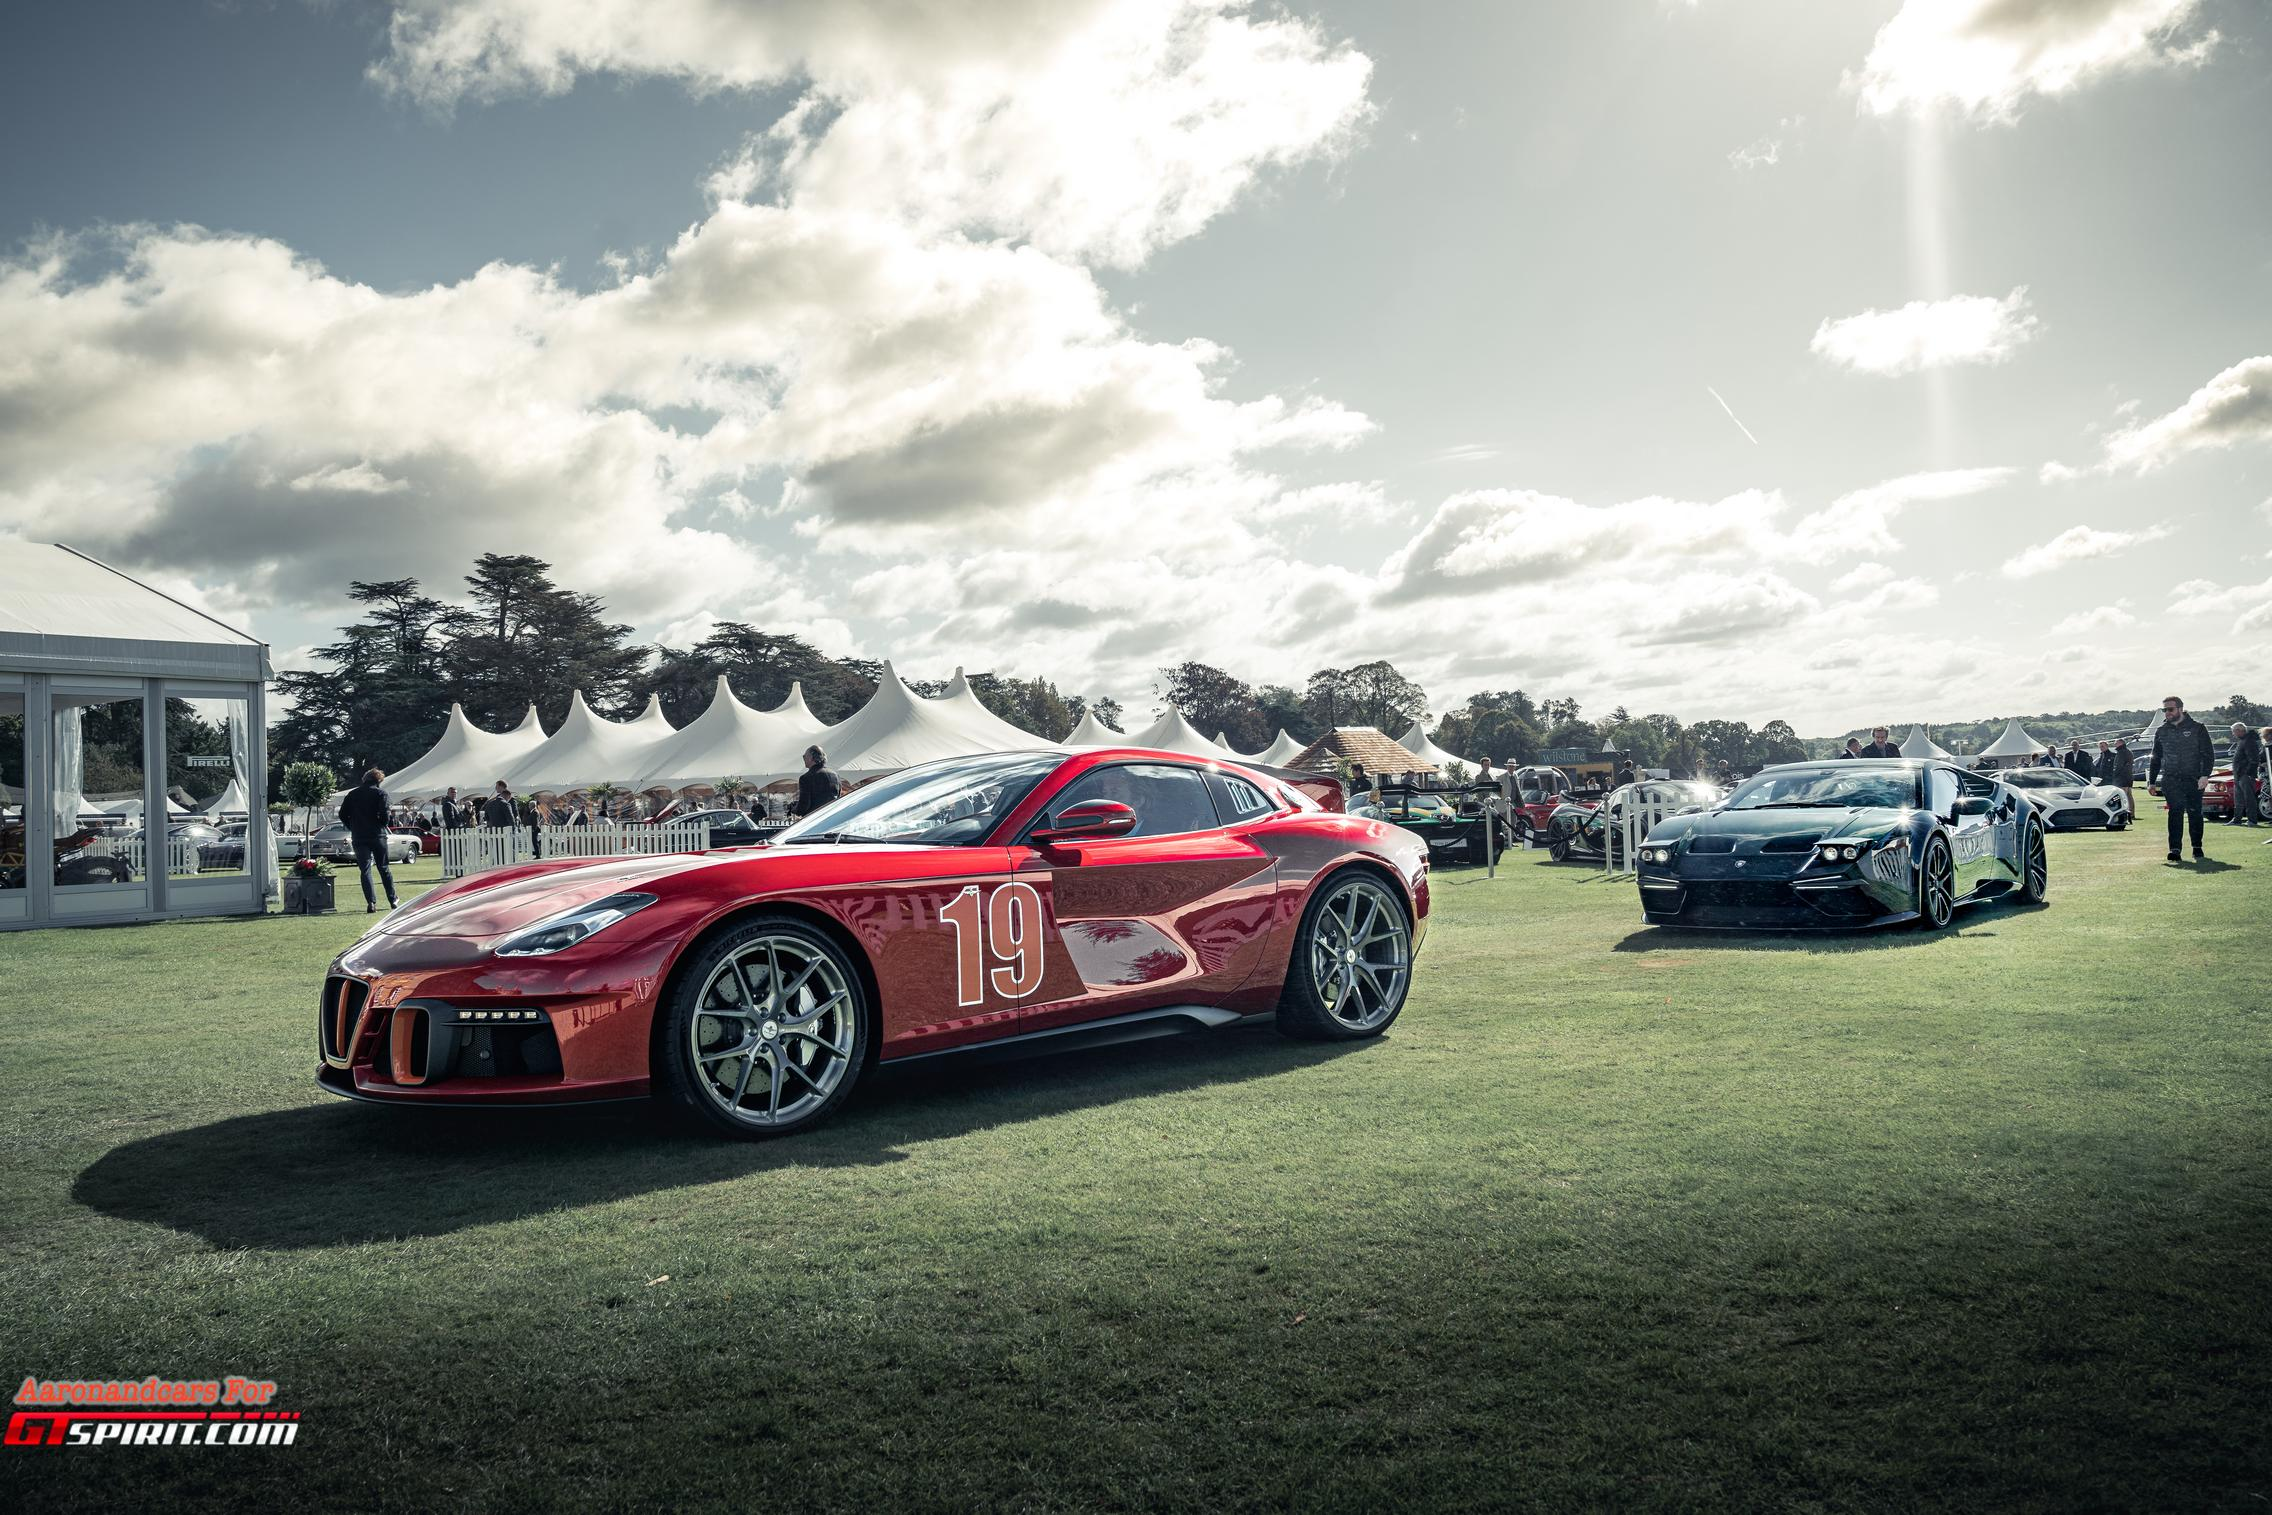 Salon Prive 2020 Superleggerqa Aero 3